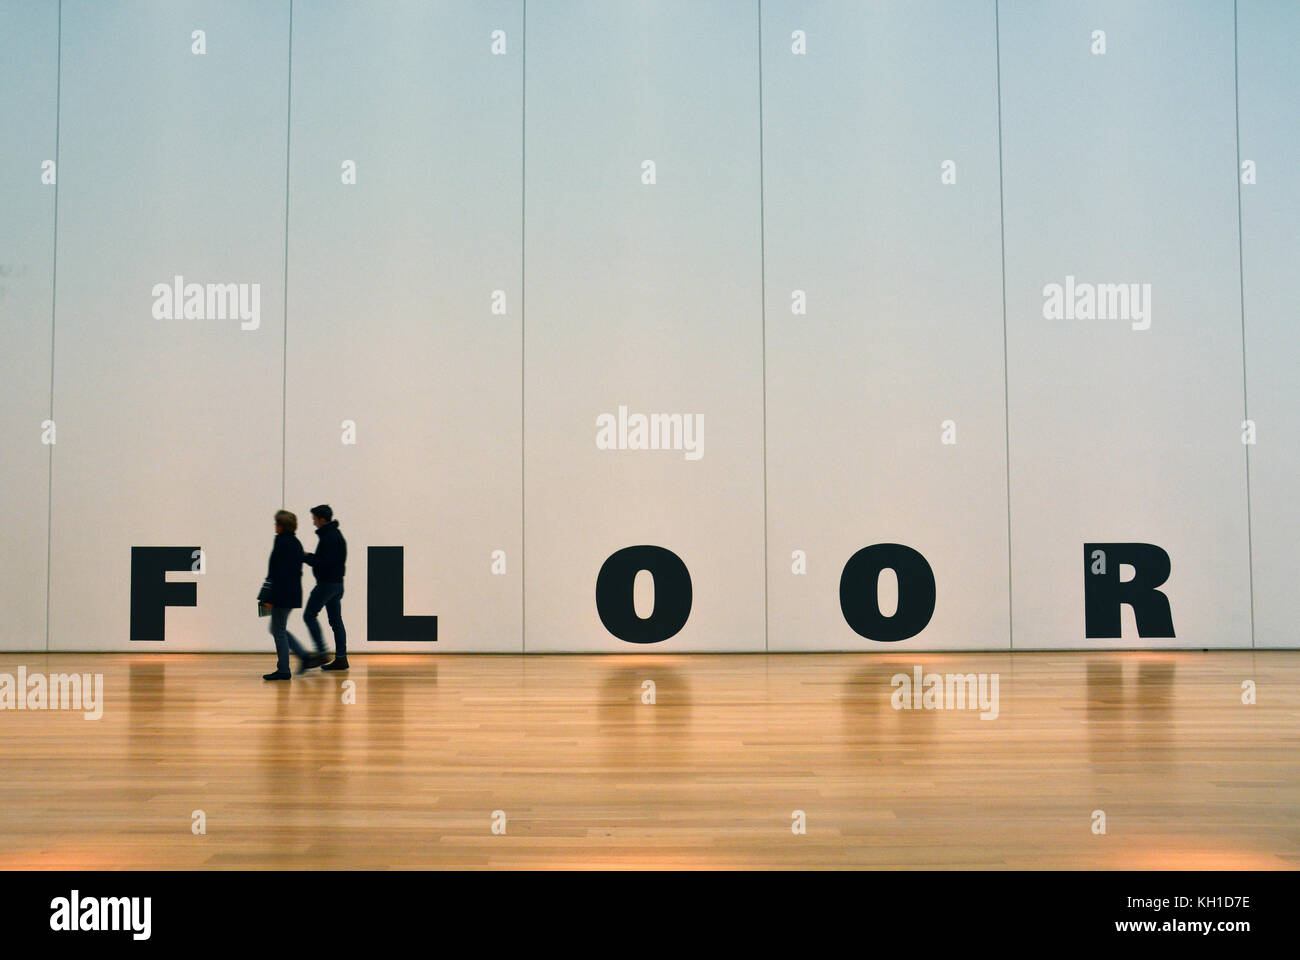 The Word Floor In Large Black Letters On A Off White Wall And